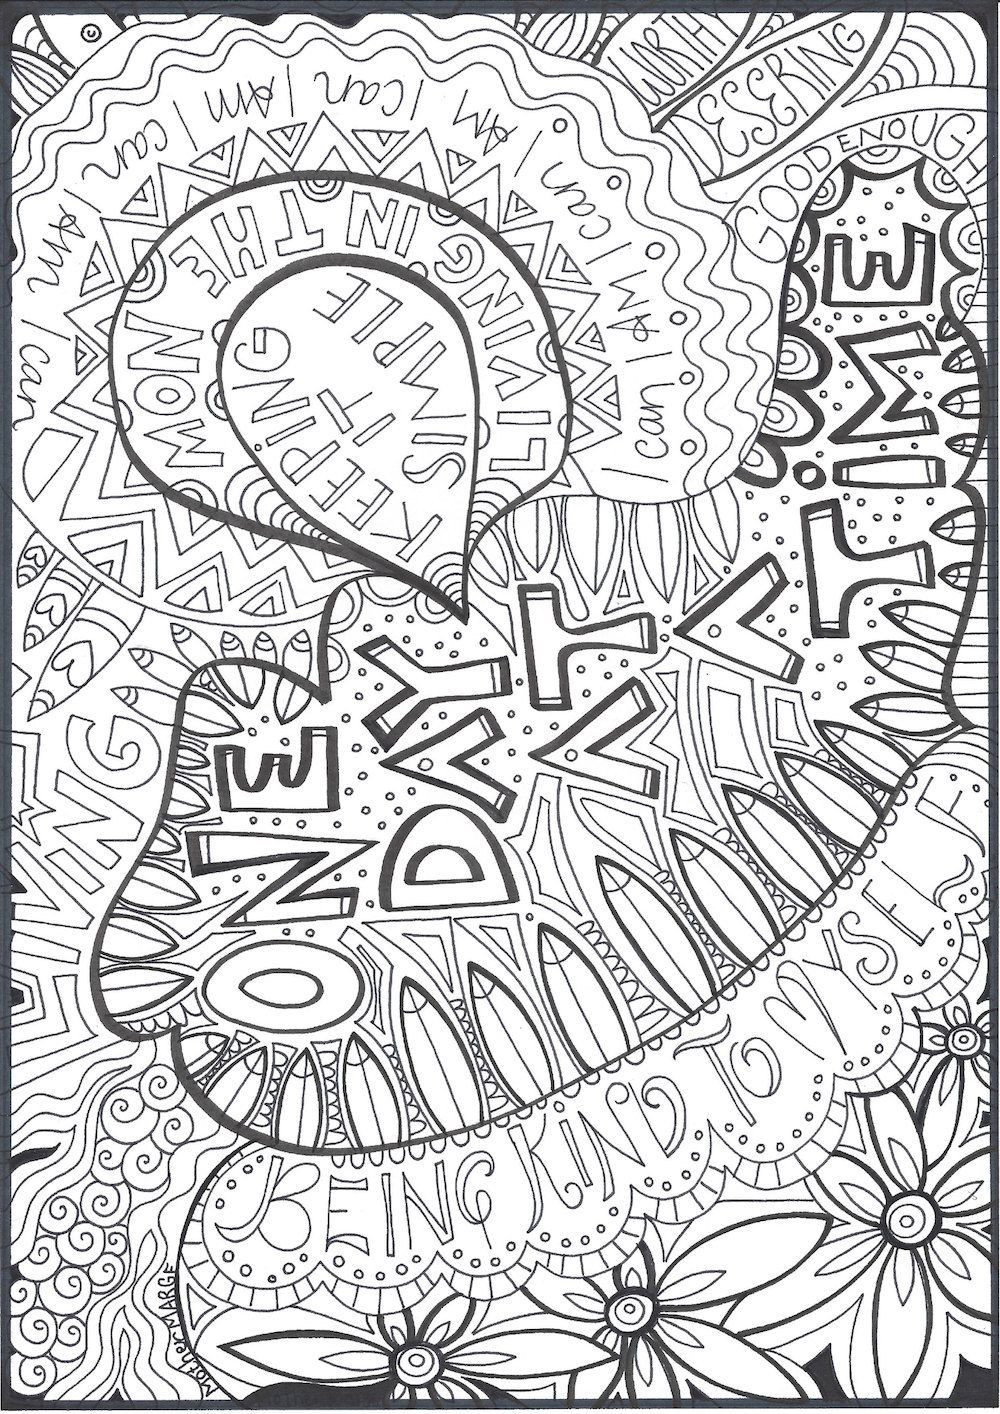 One Day At A Time Coloring Page Download, Adult Coloring